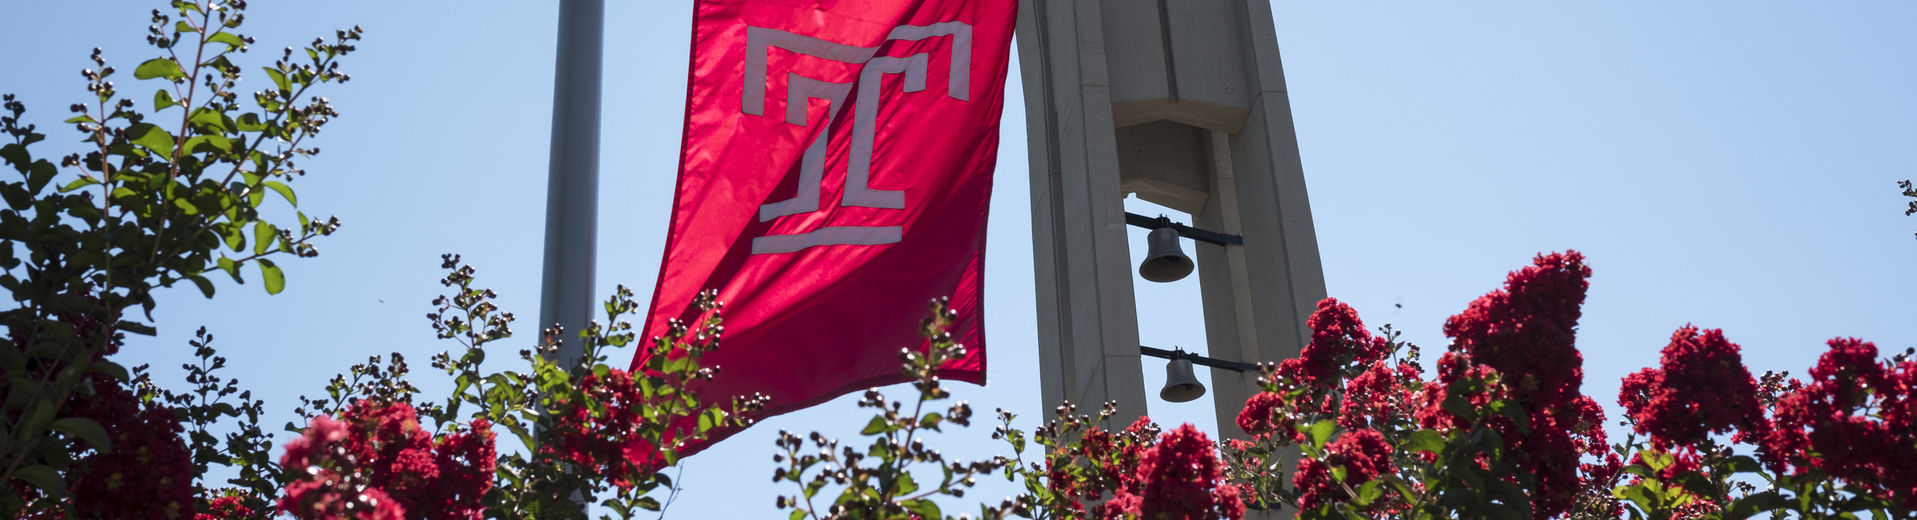 Temple University flag with bell tower in the distance and pink flowers in foreground